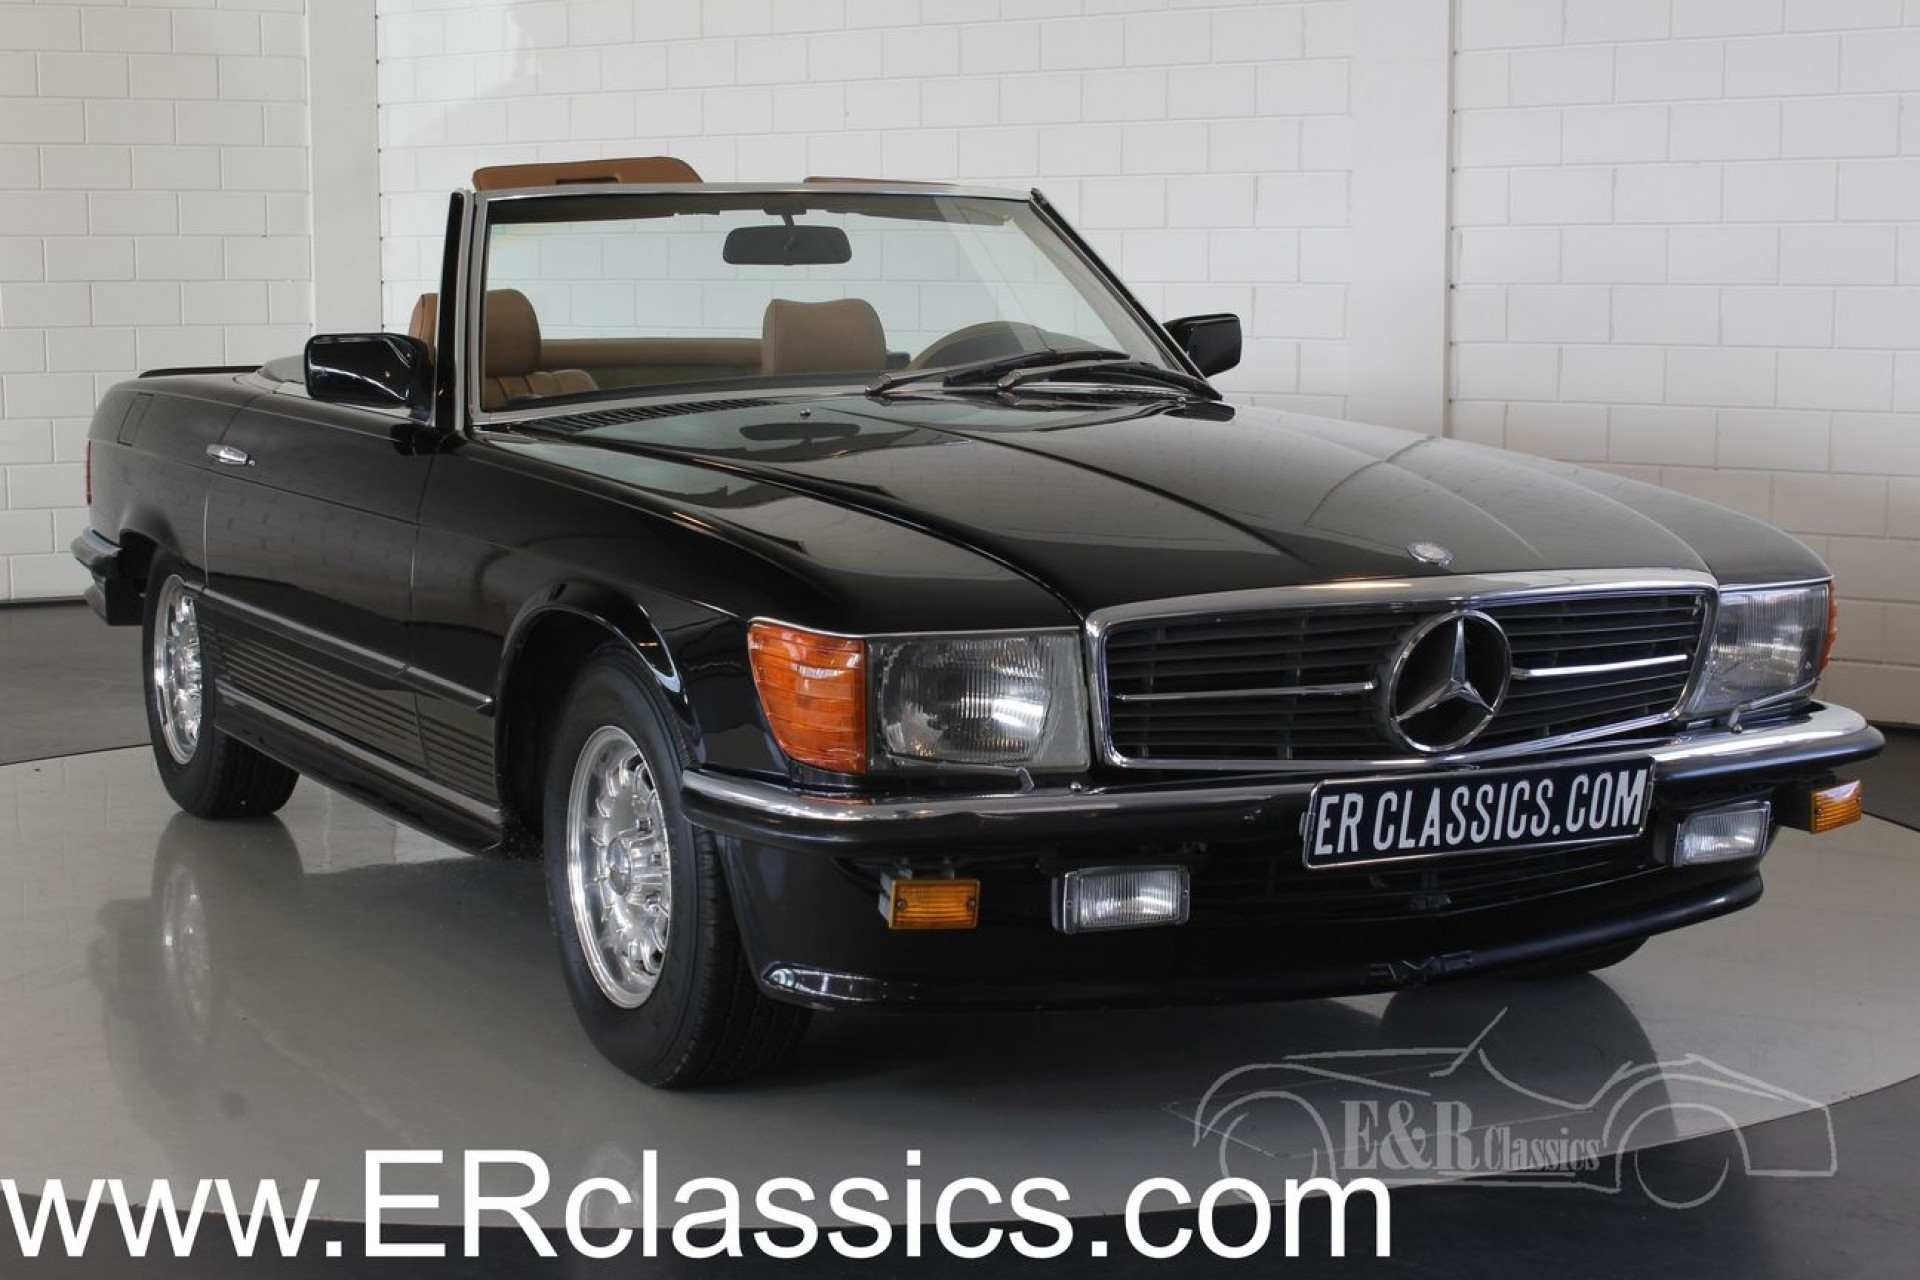 mercedes benz 380 sl cabriolet 1985 for sale at erclassics. Black Bedroom Furniture Sets. Home Design Ideas